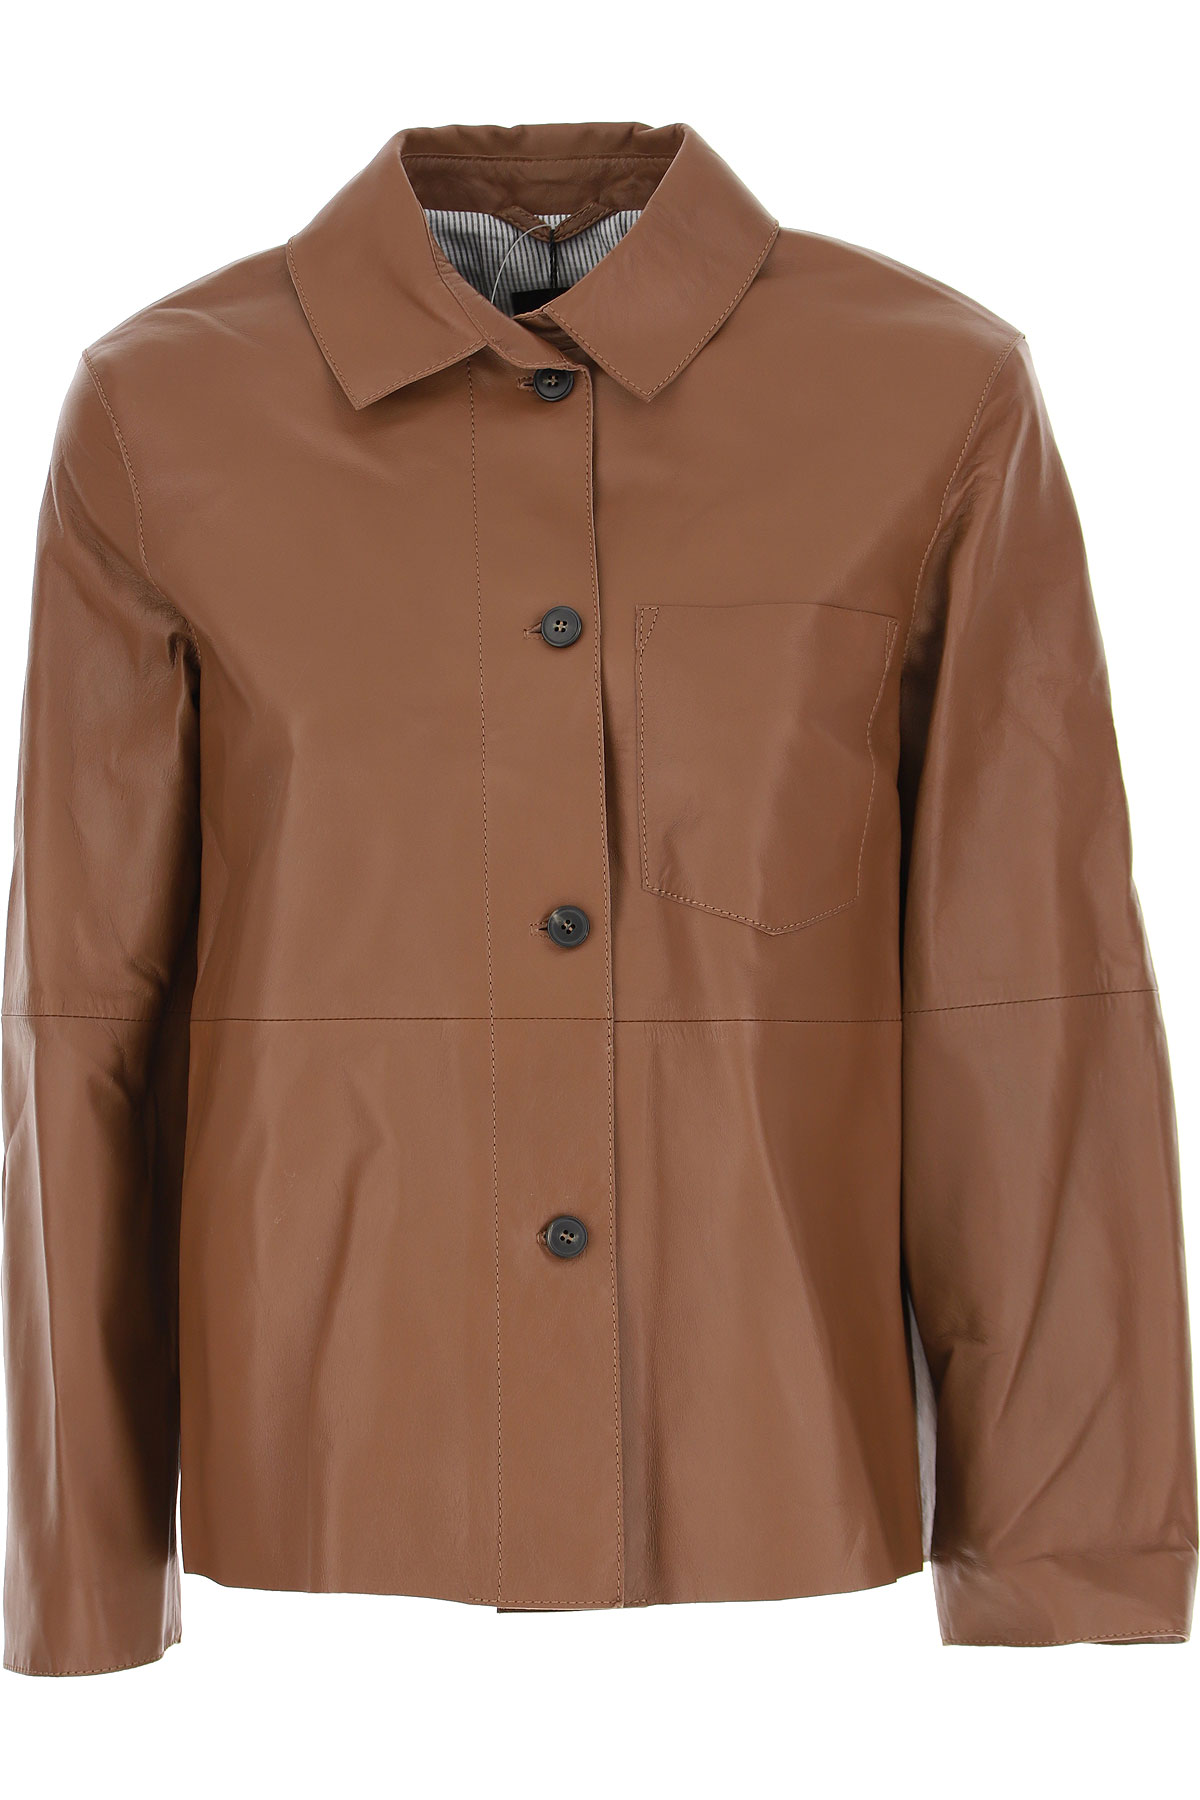 Max Mara Leather Jacket for Women On Sale, Brown, Leather, 2019, 2